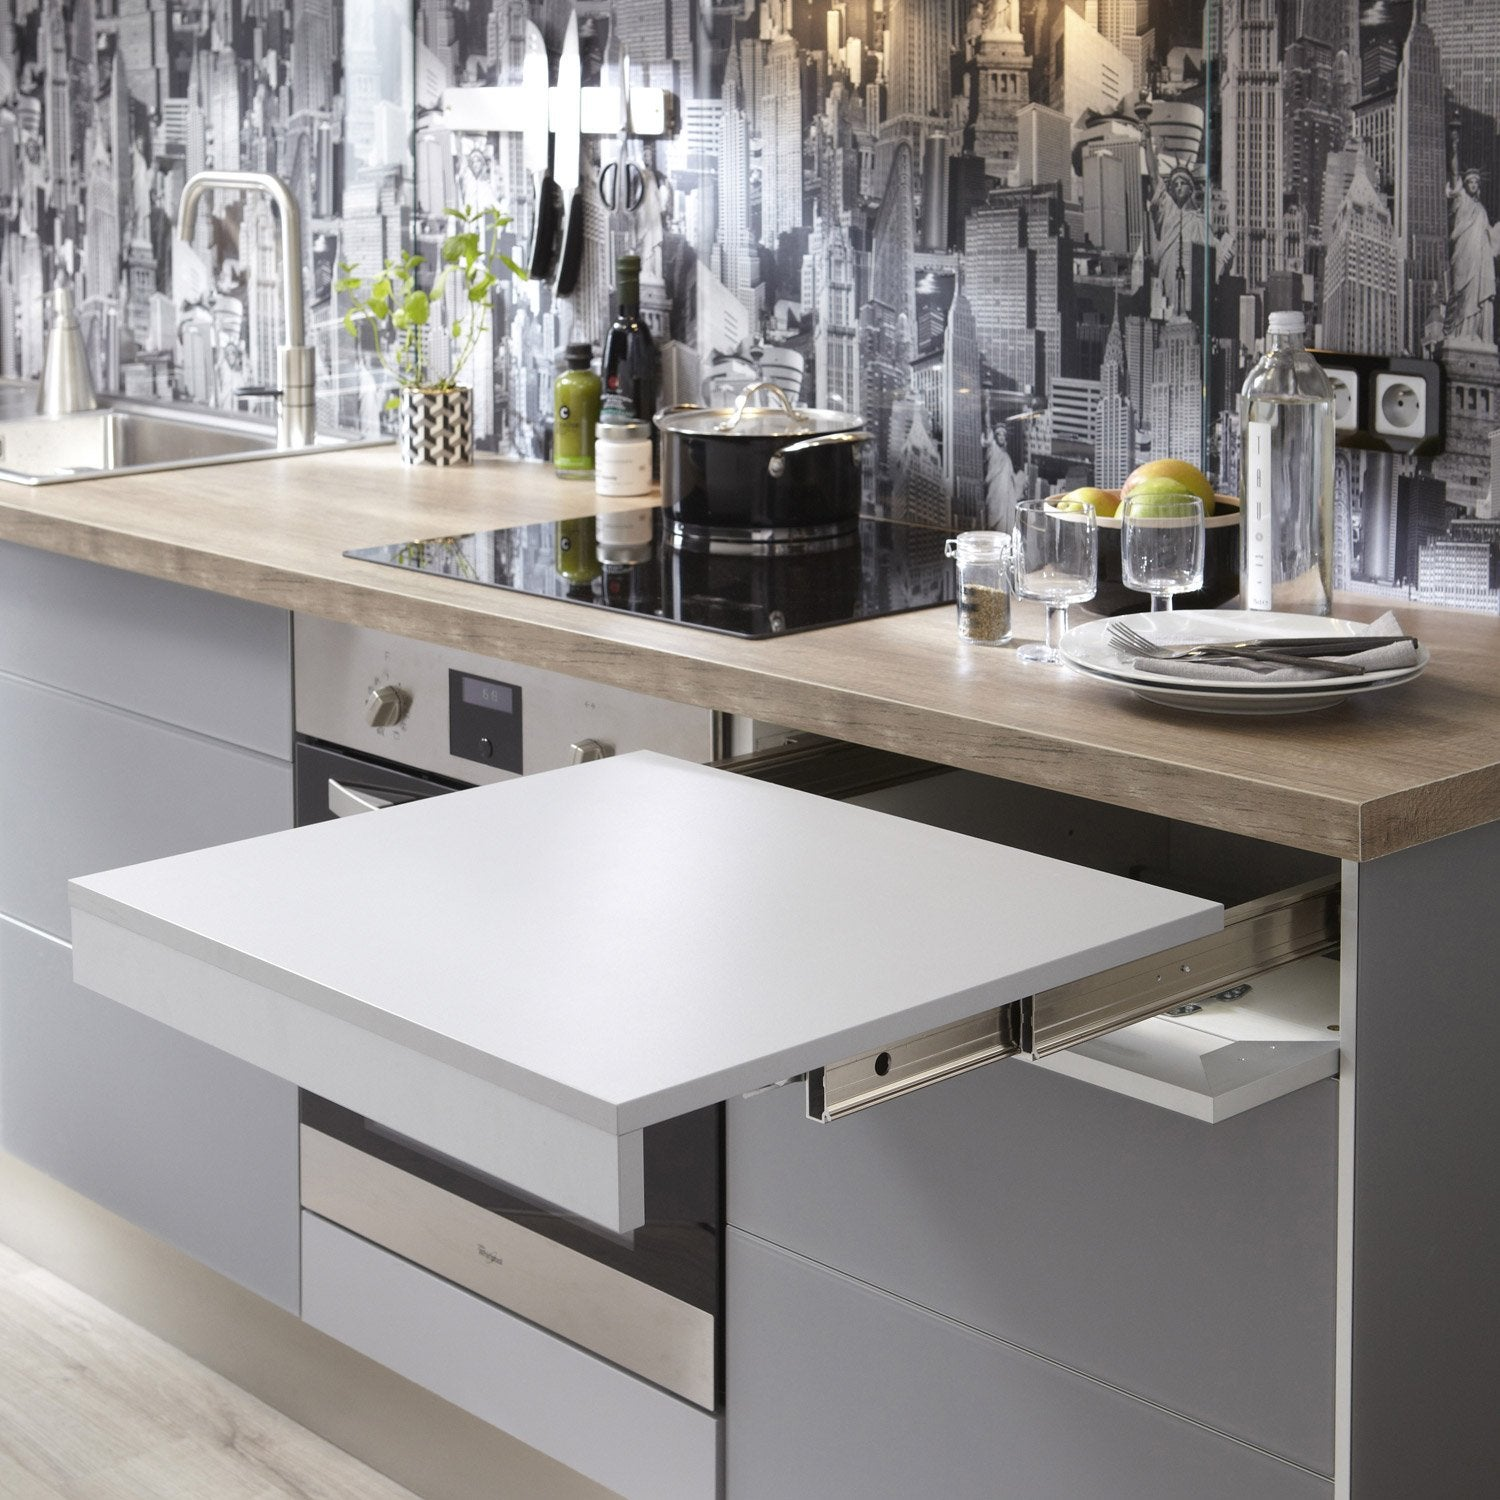 Kitchenette leroy merlin pintura en spray para renovar - Kitchenette leroy merlin ...